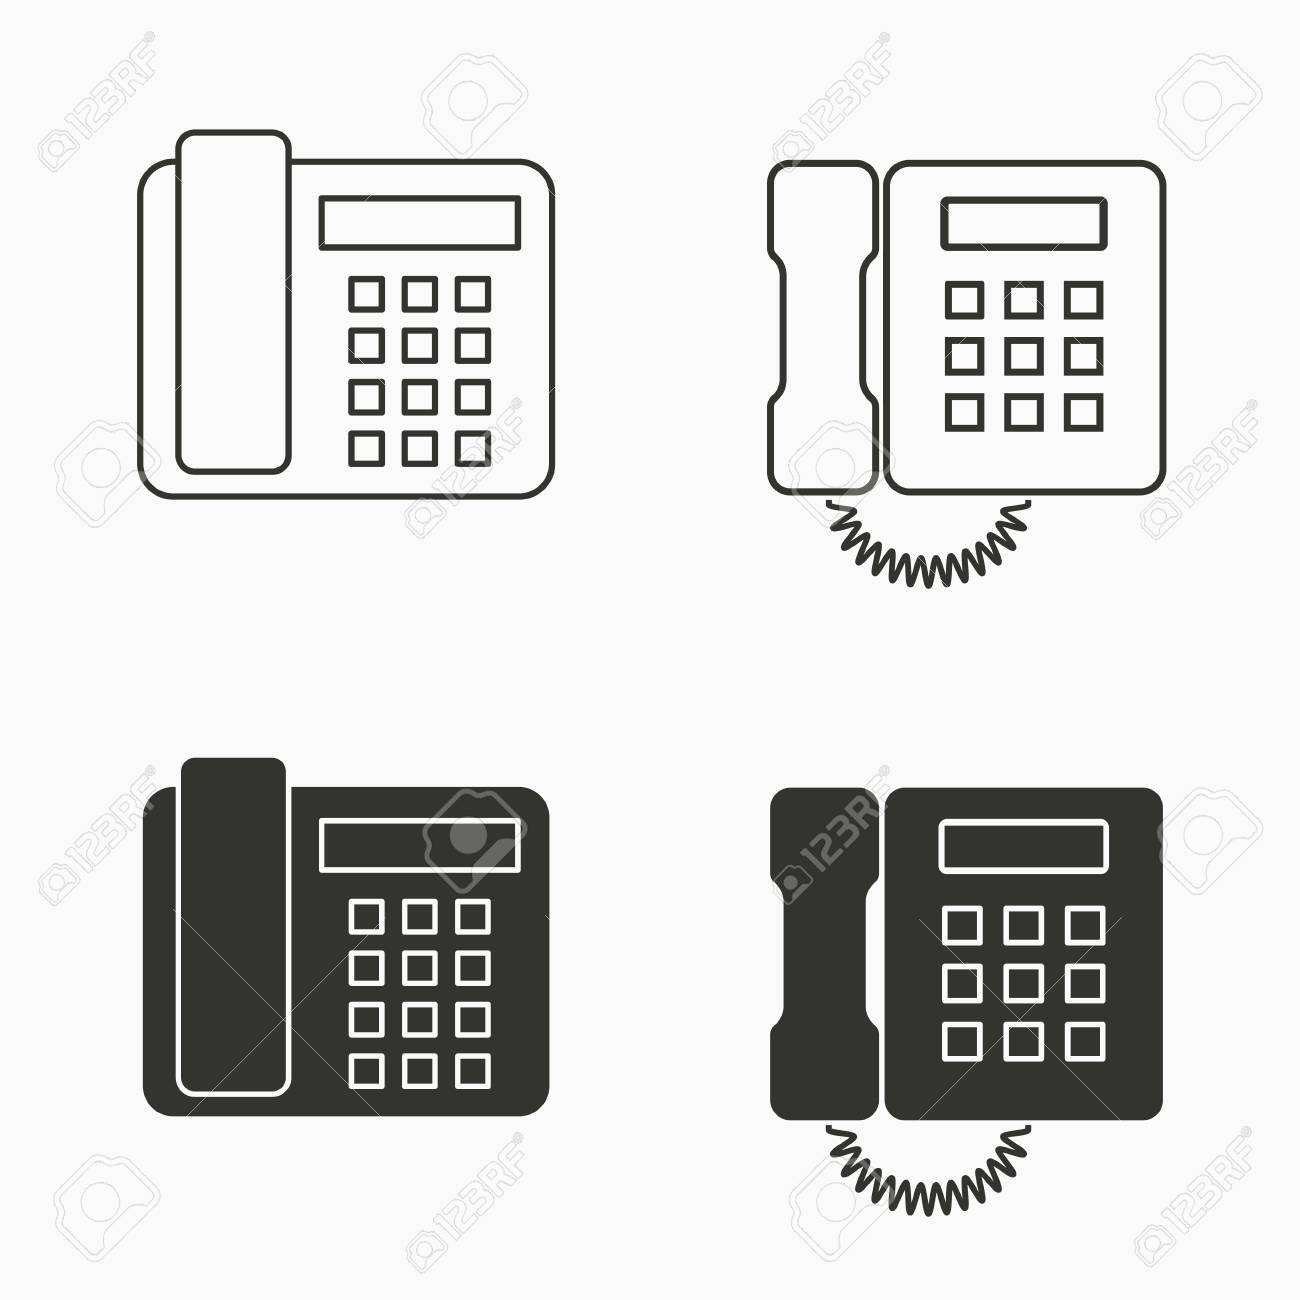 Vector office phone icon